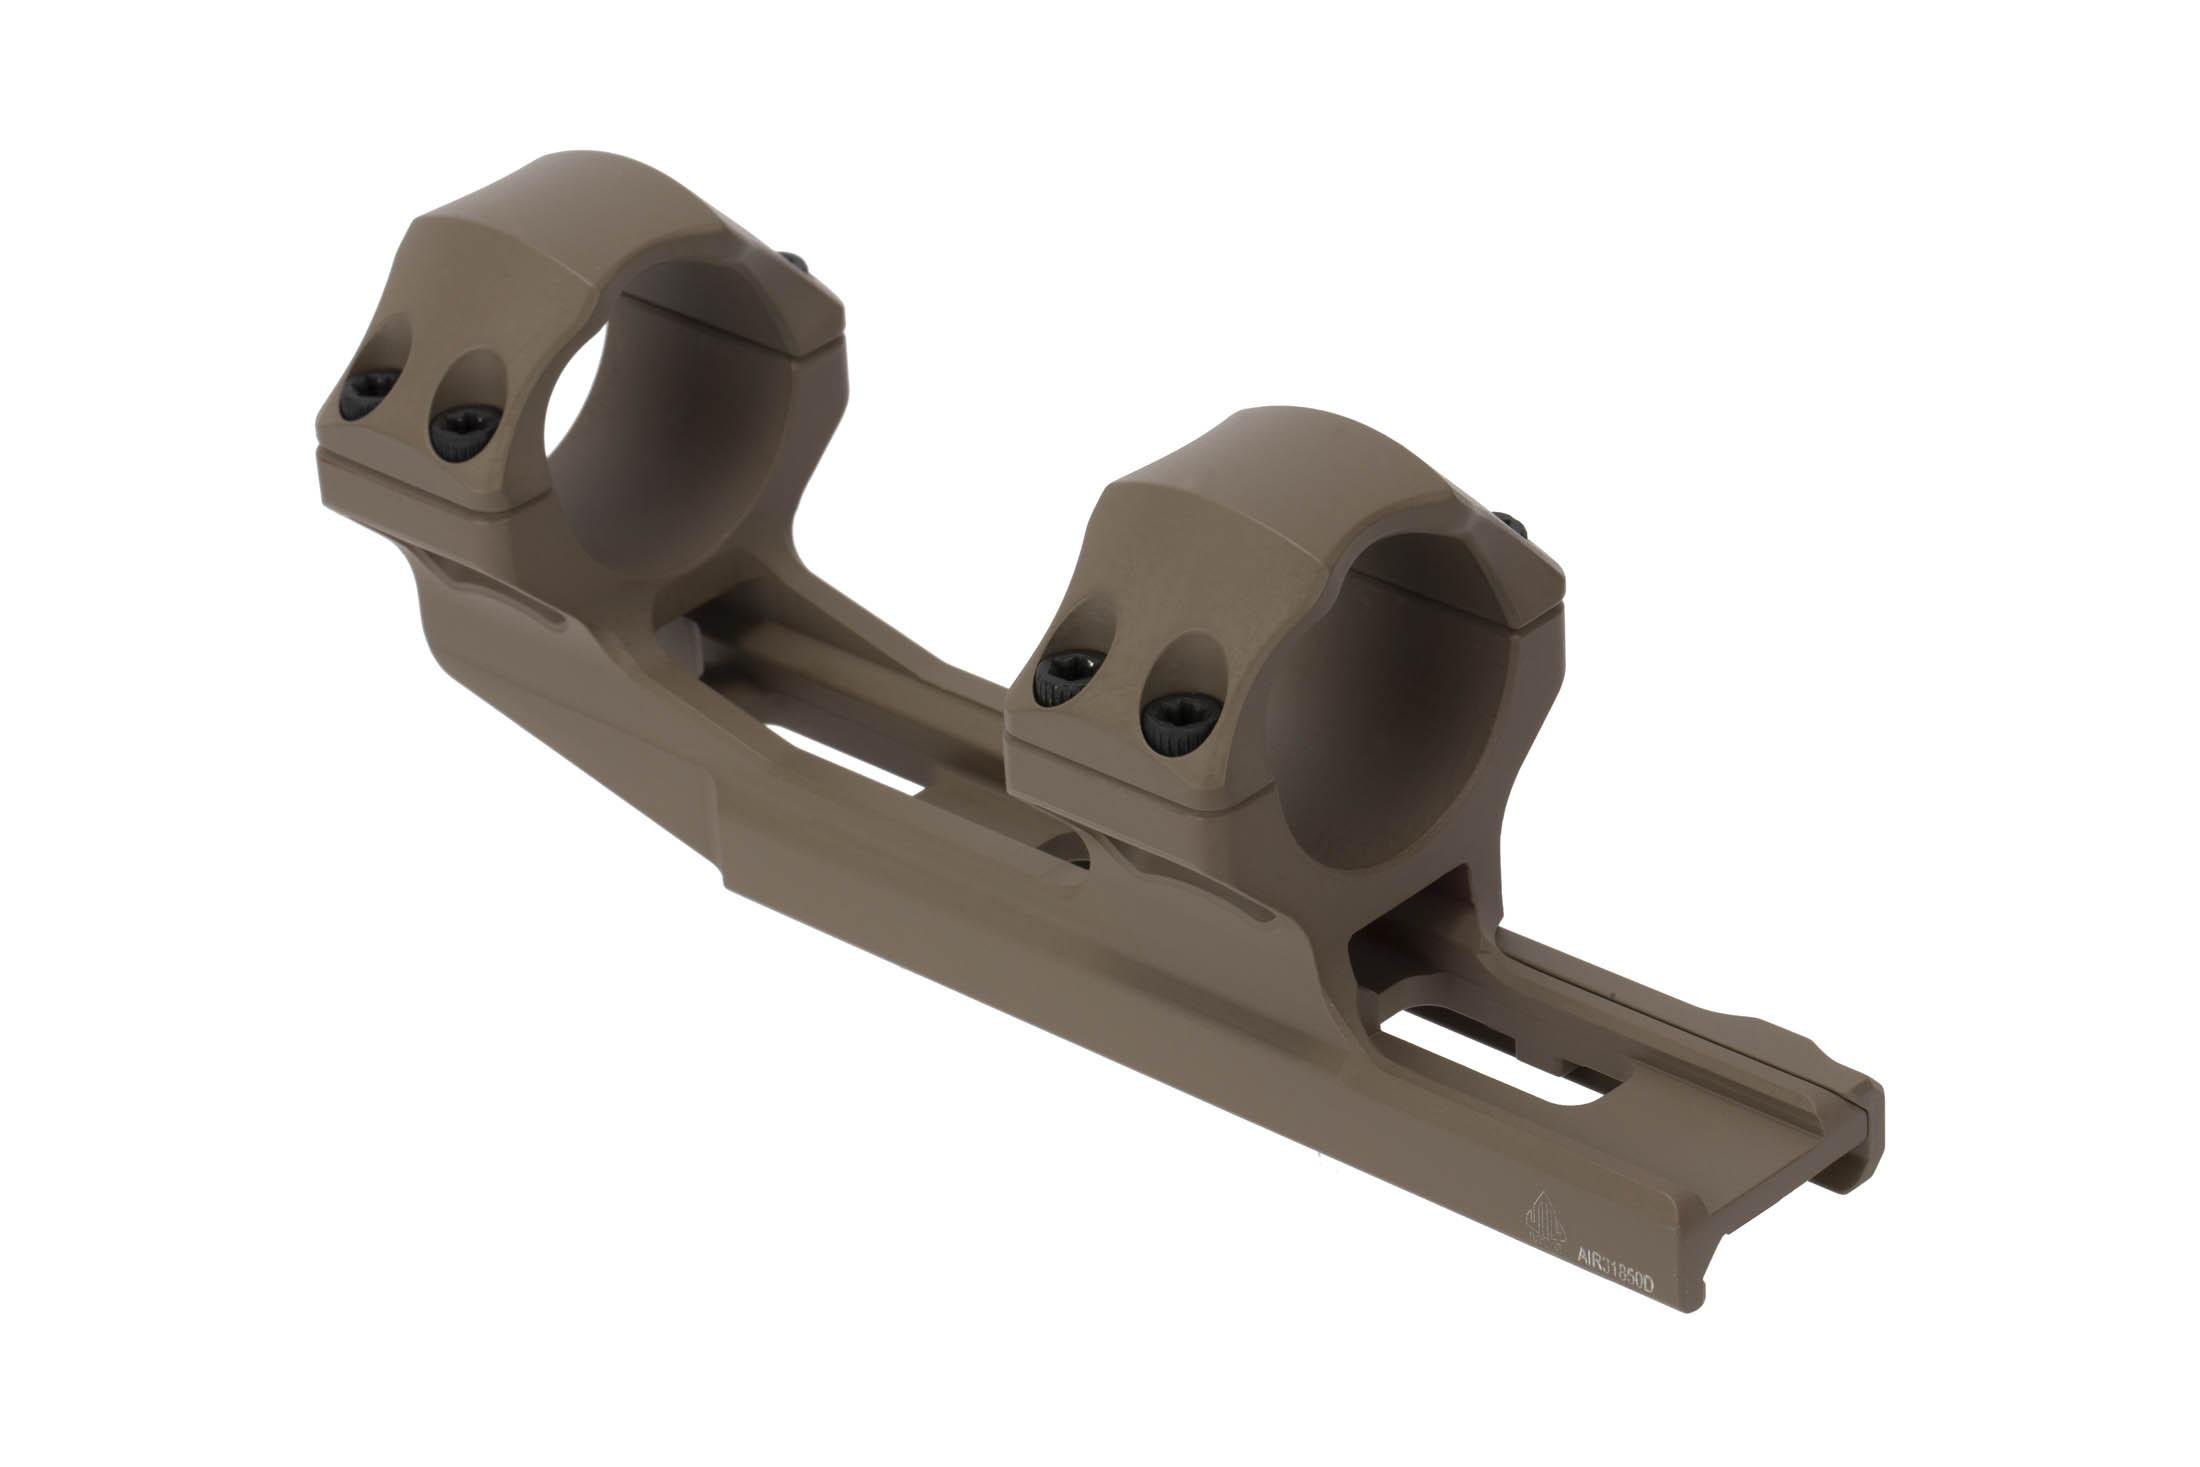 Leapers UTG ACCU-SYNC 30mm FDE extended scope mount with medium height rings has a lightweight skeletonized design